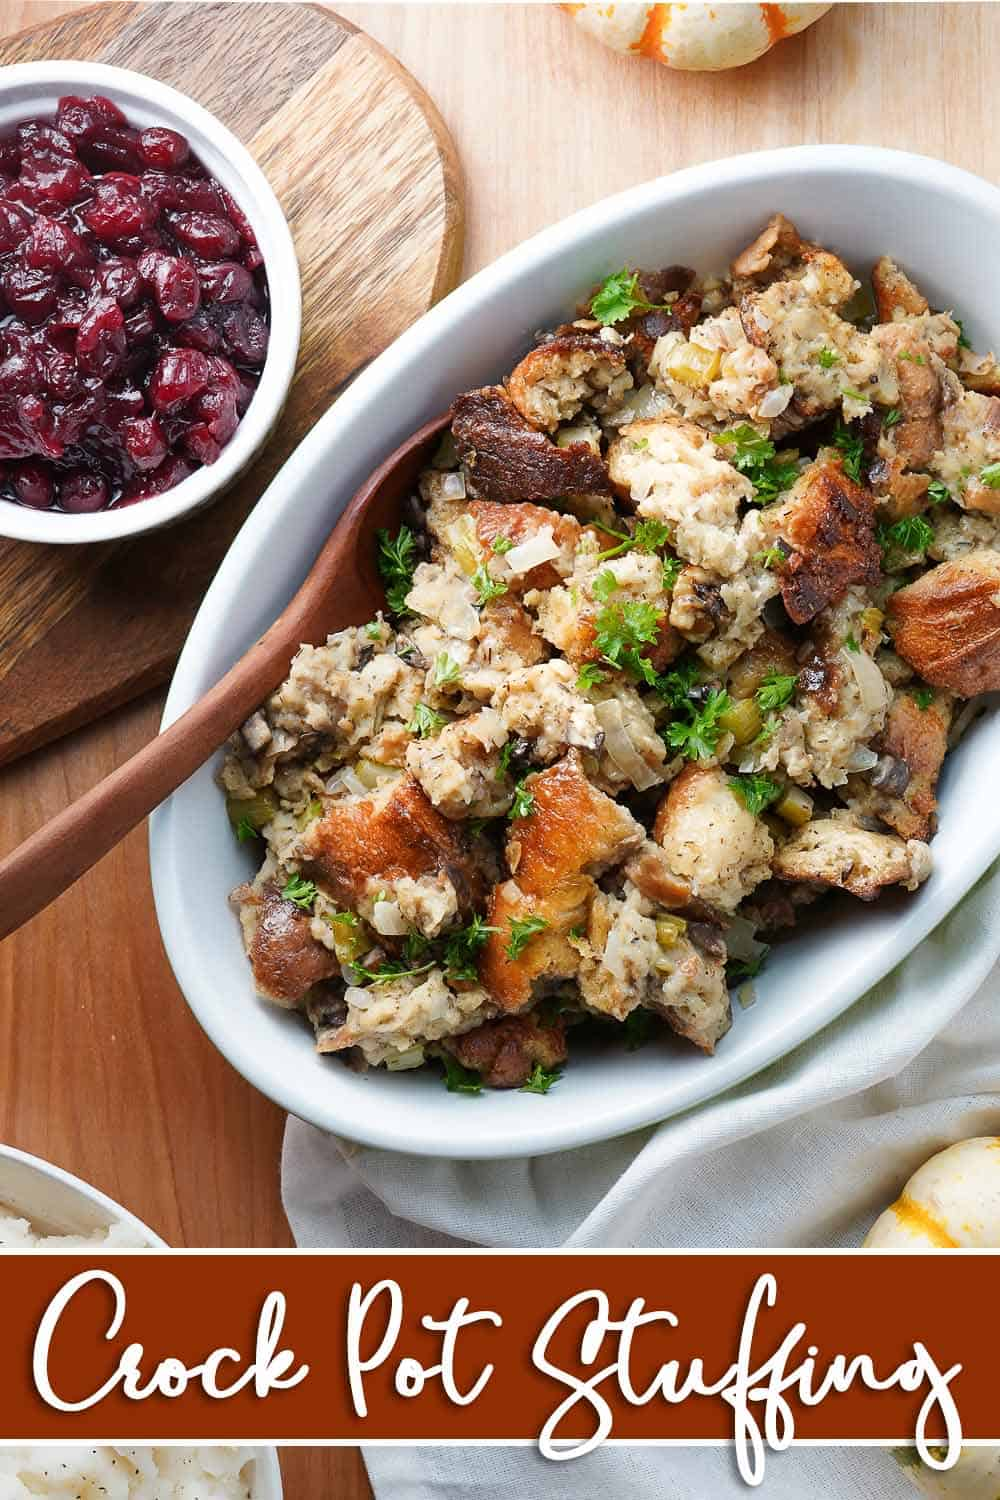 Crock Pot Stuffing in oval dish with cranberry sauce on the side